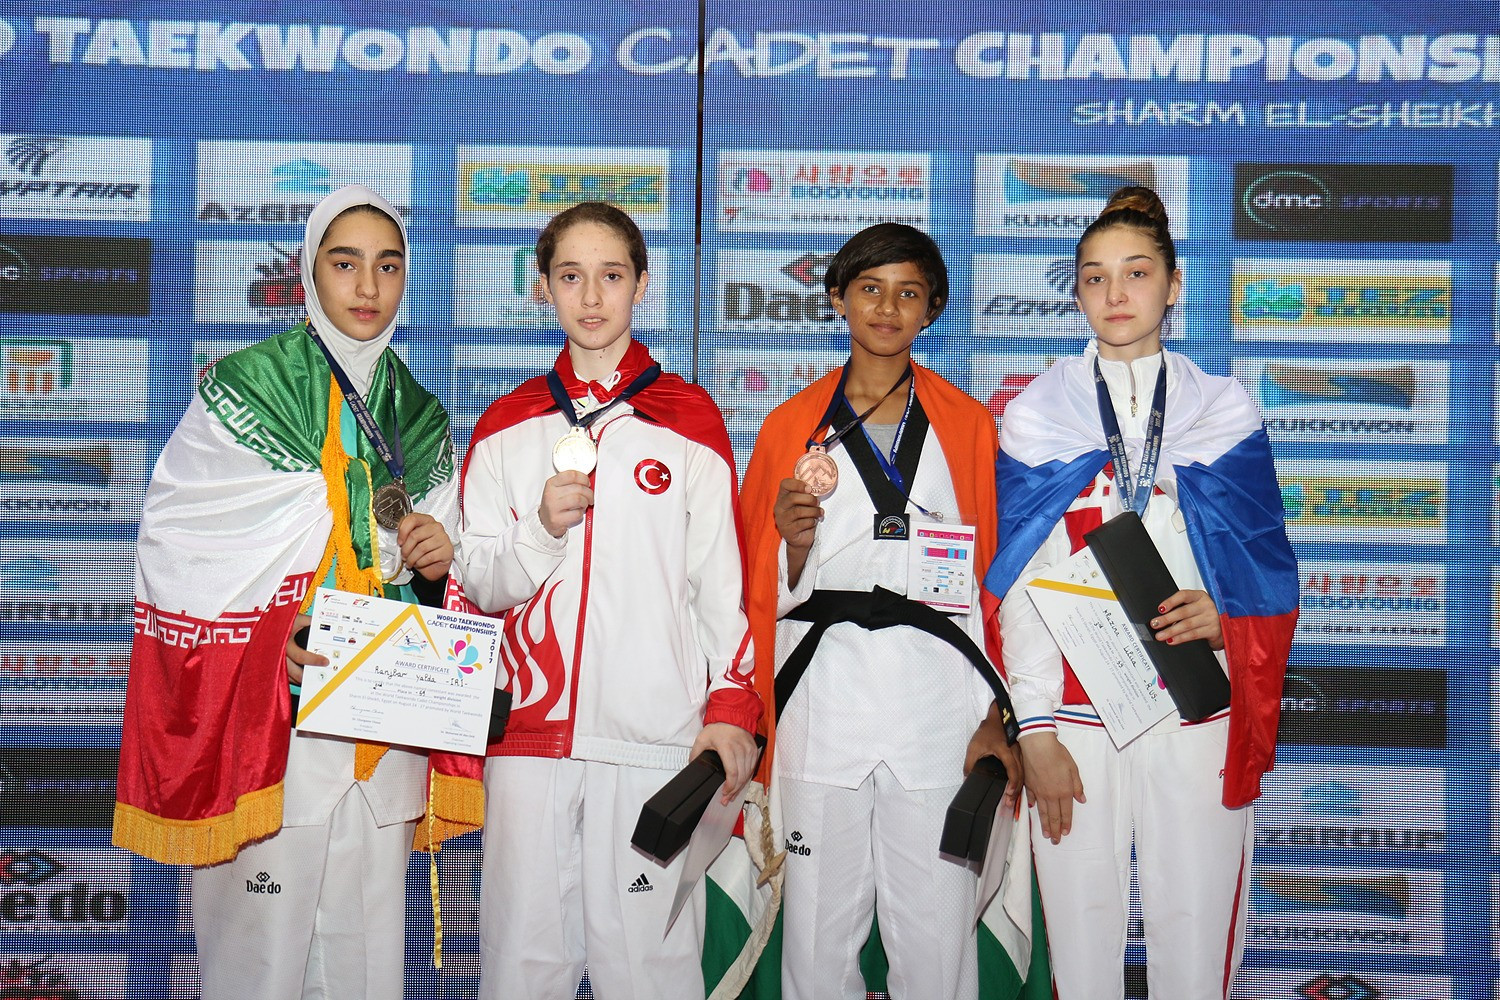 Five more gold medals were won at the youth event ©World Taekwondo